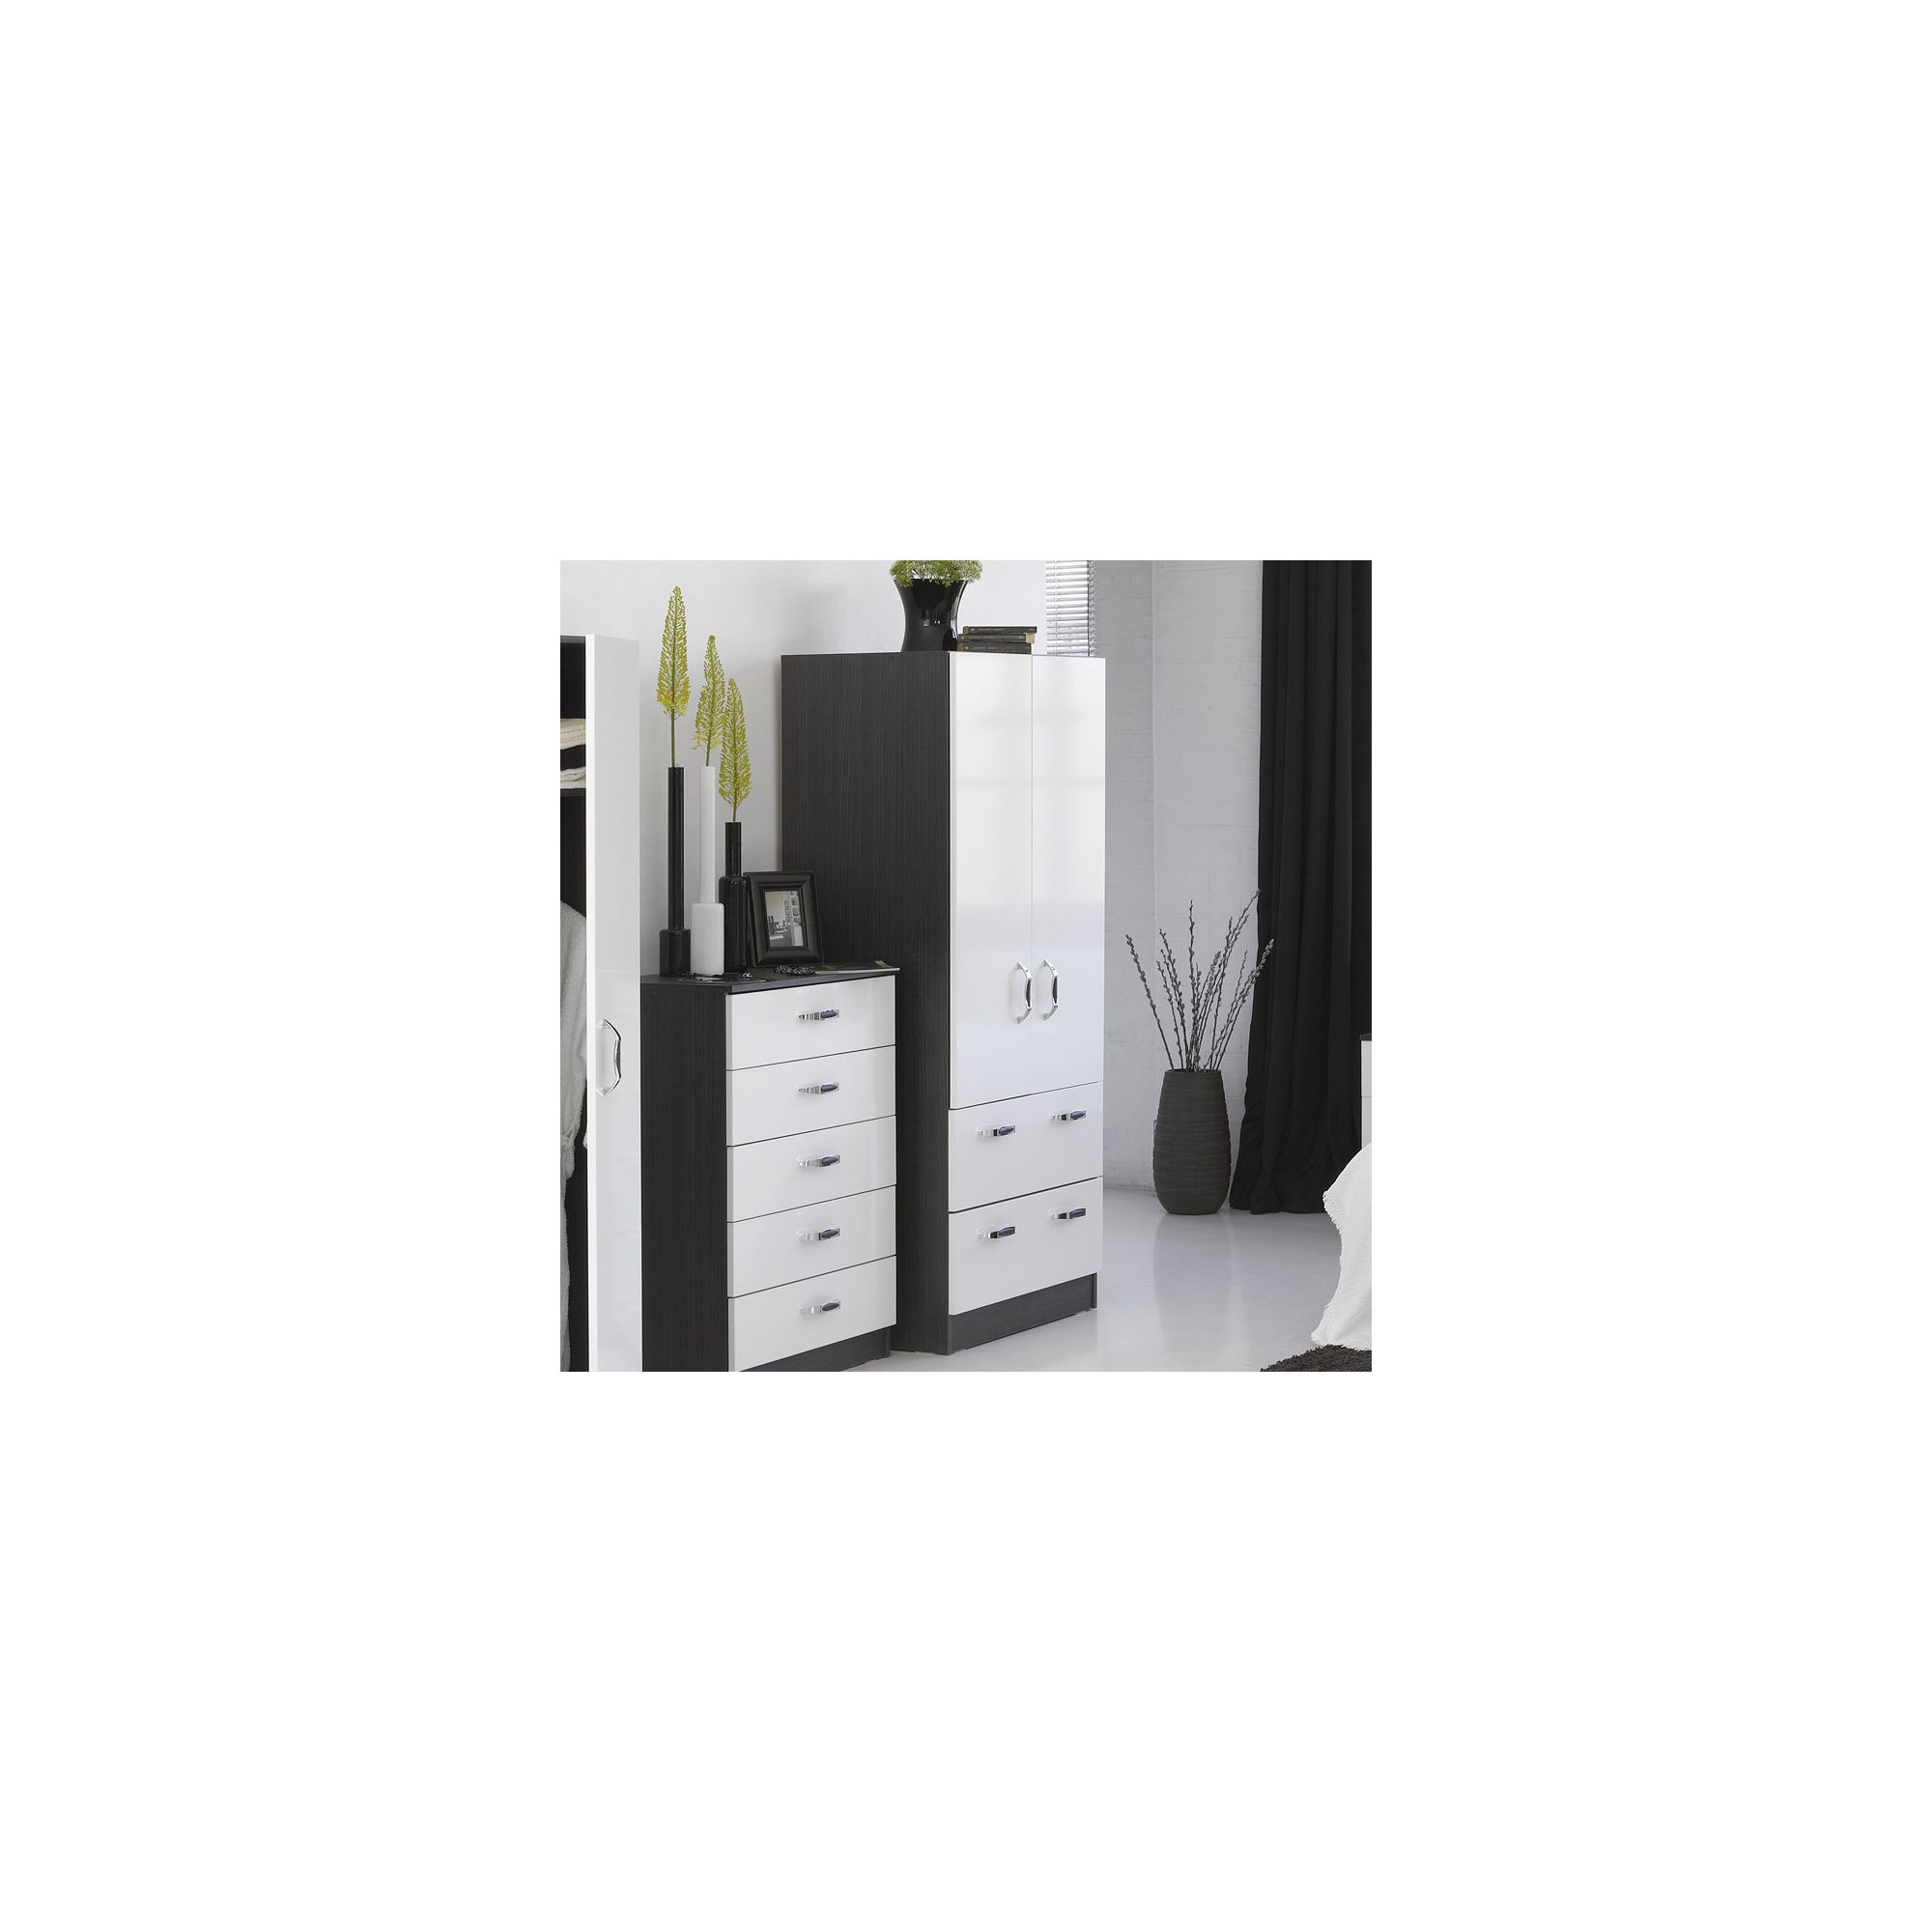 Alto Furniture Mode Piano Combi Two Drawer Wardrobe with Mirror in White at Tesco Direct